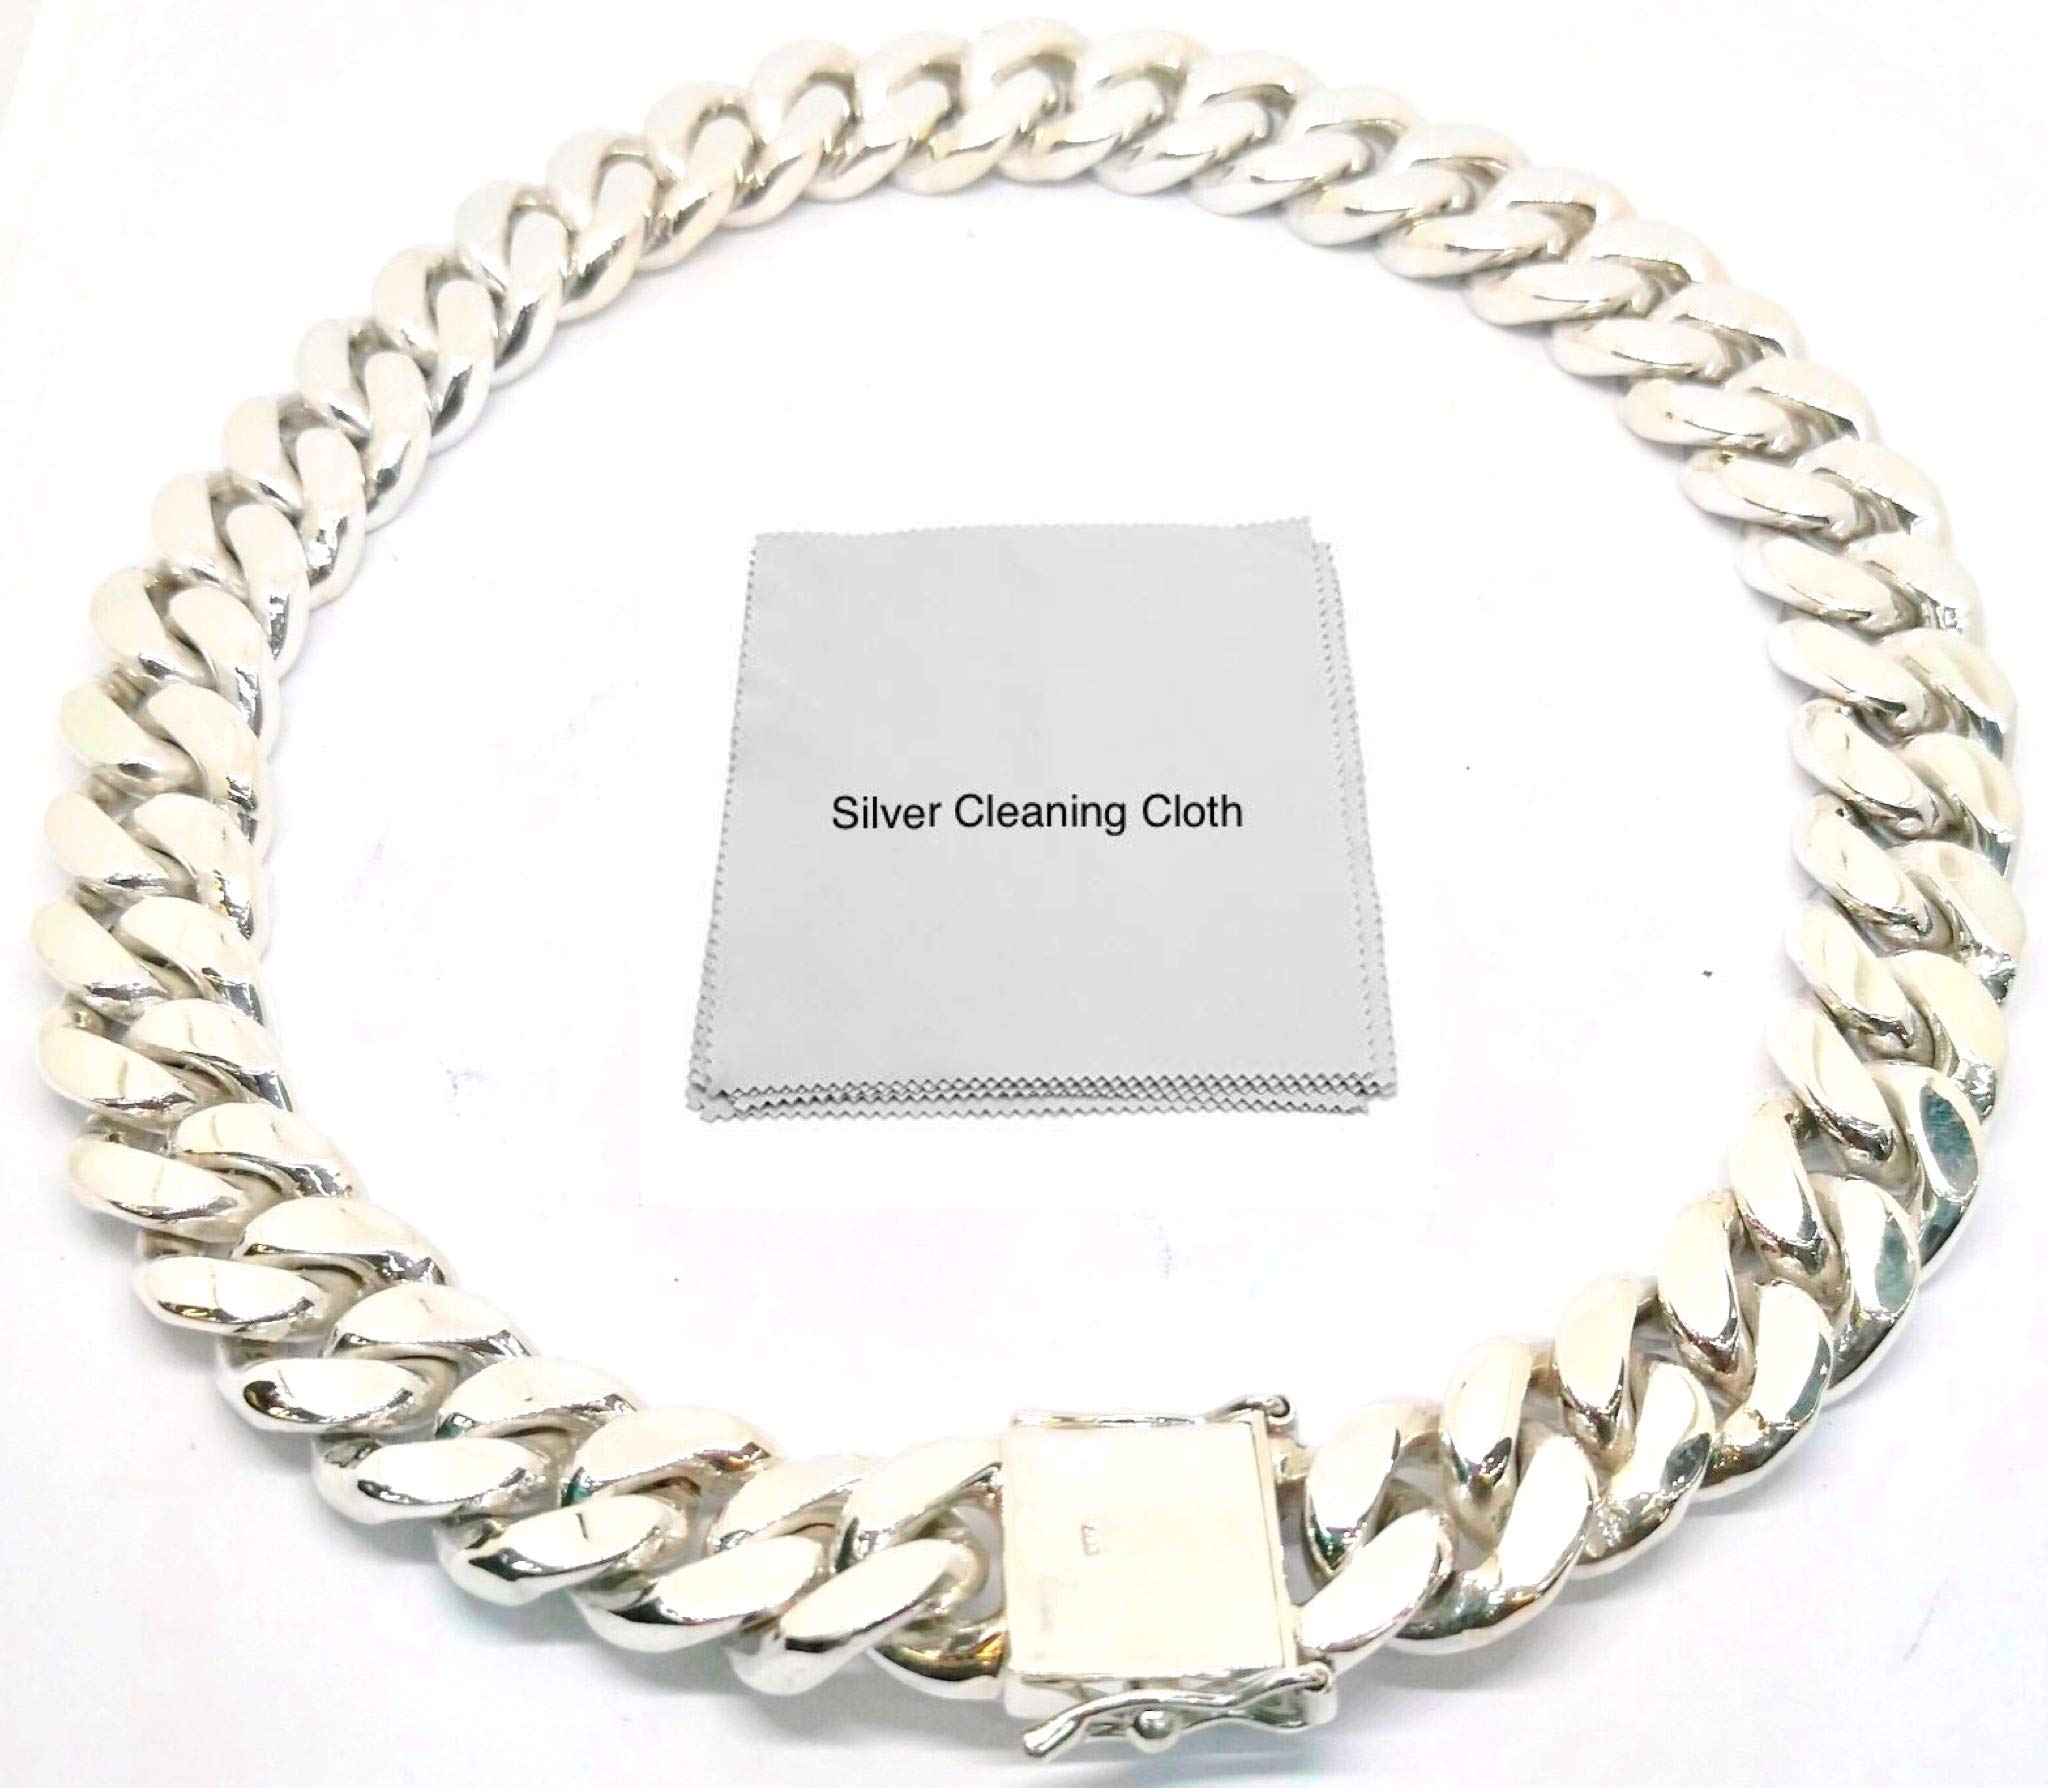 joy-nin Huge 925 Sterling Silver 15 mm Cuban Link Curb Chain Necklace for Men with Silver Cleaning Cloth and Velvet Box (24)